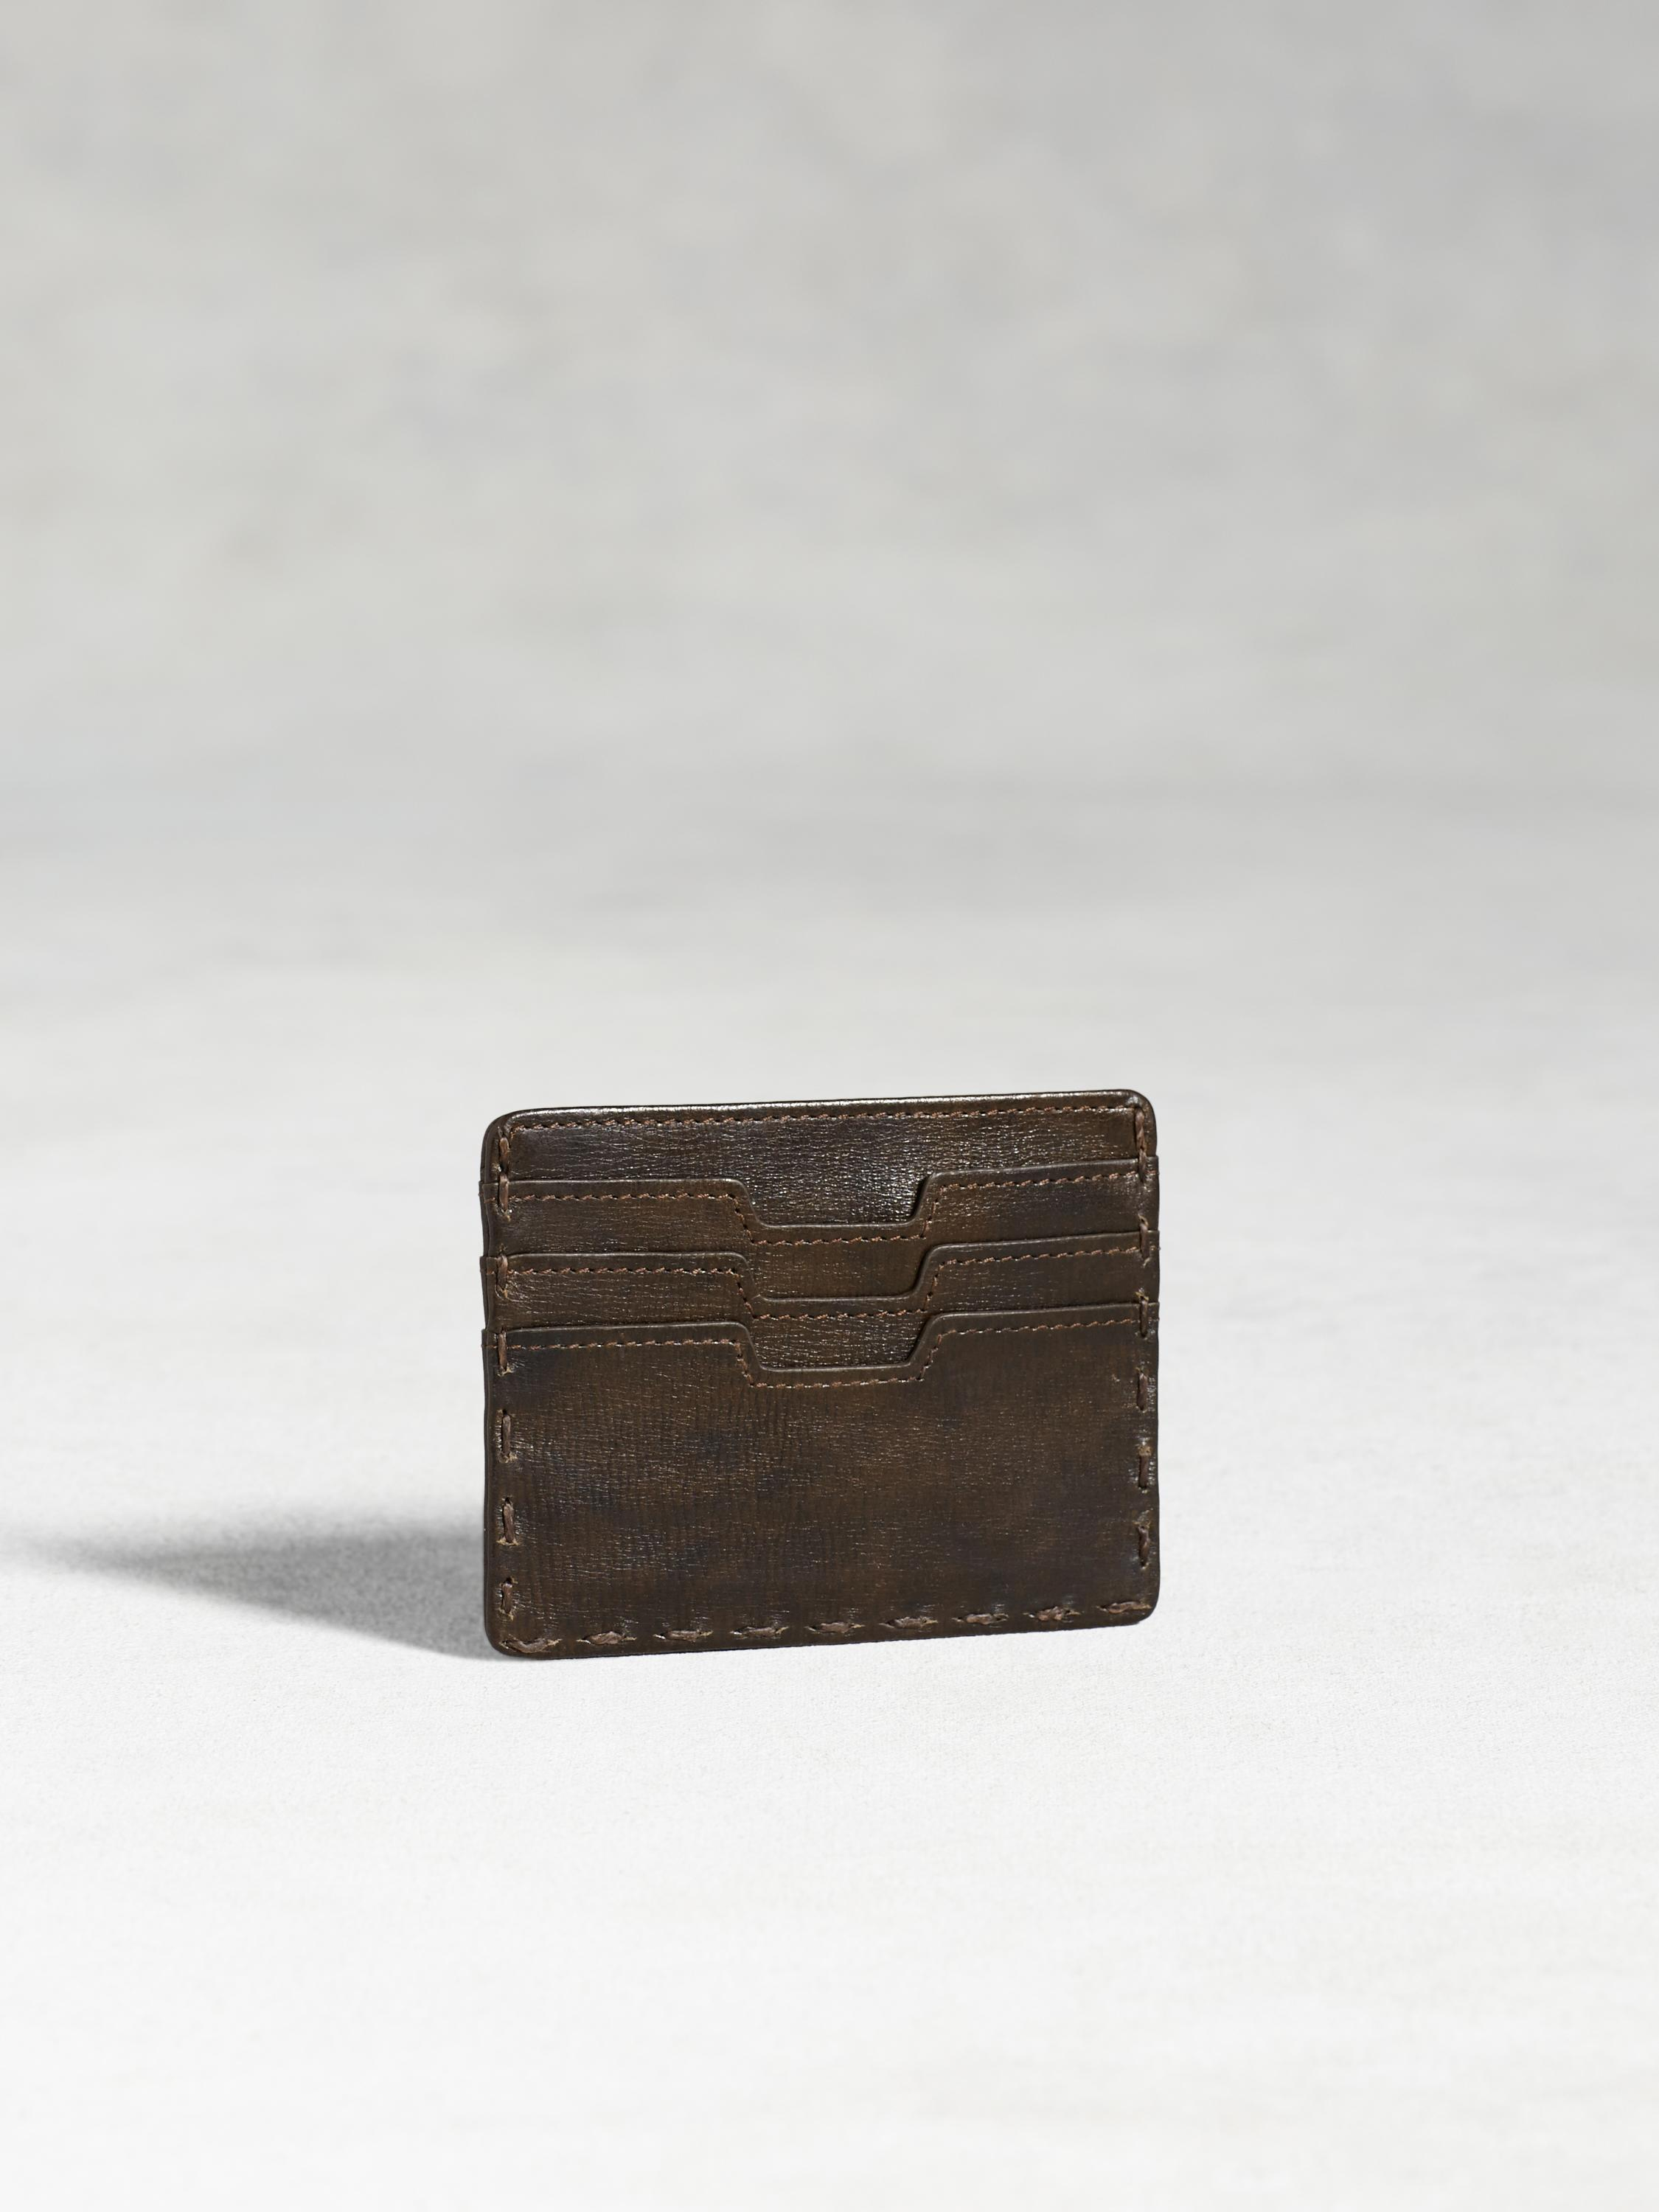 Sequoia Card Case